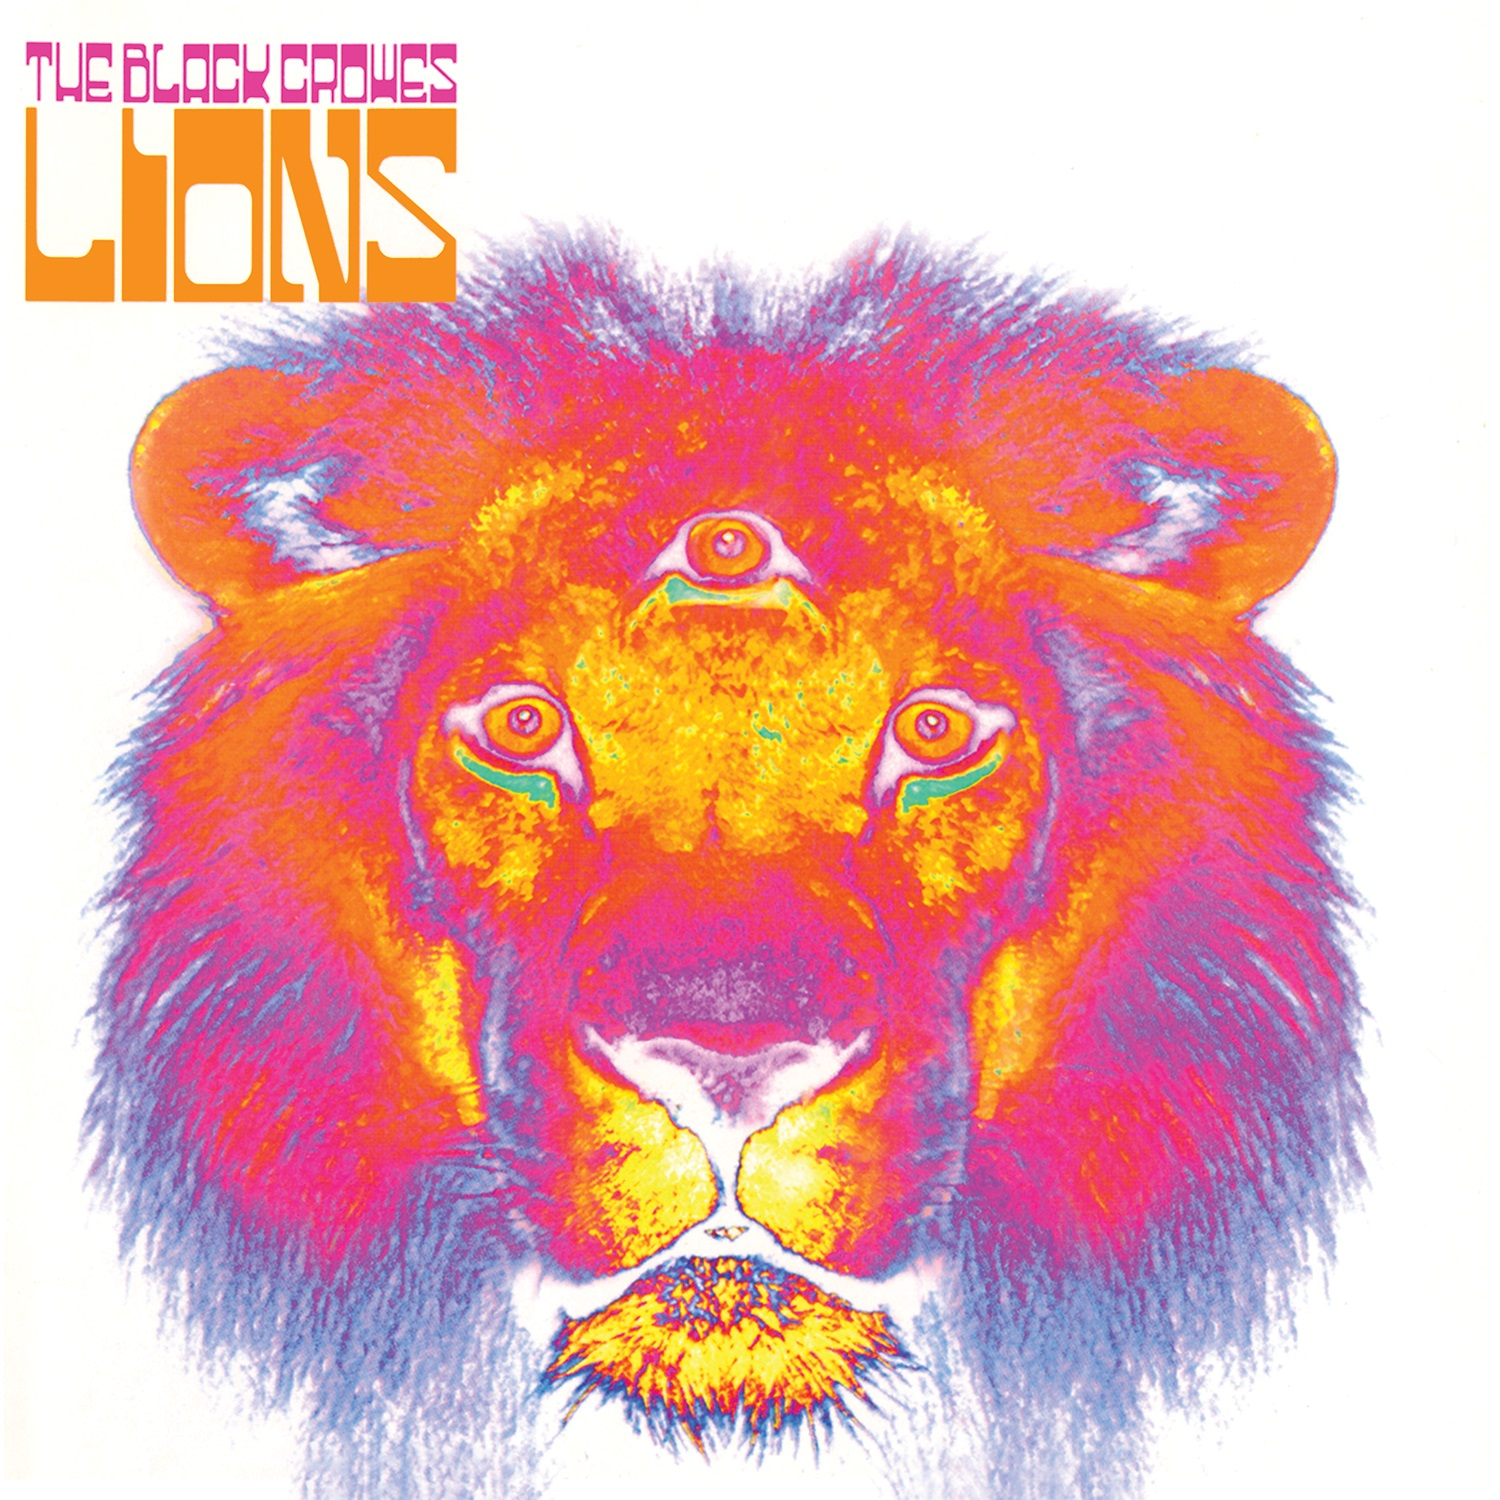 Black Crowes - Lions [RSD Drops Aug 2020]